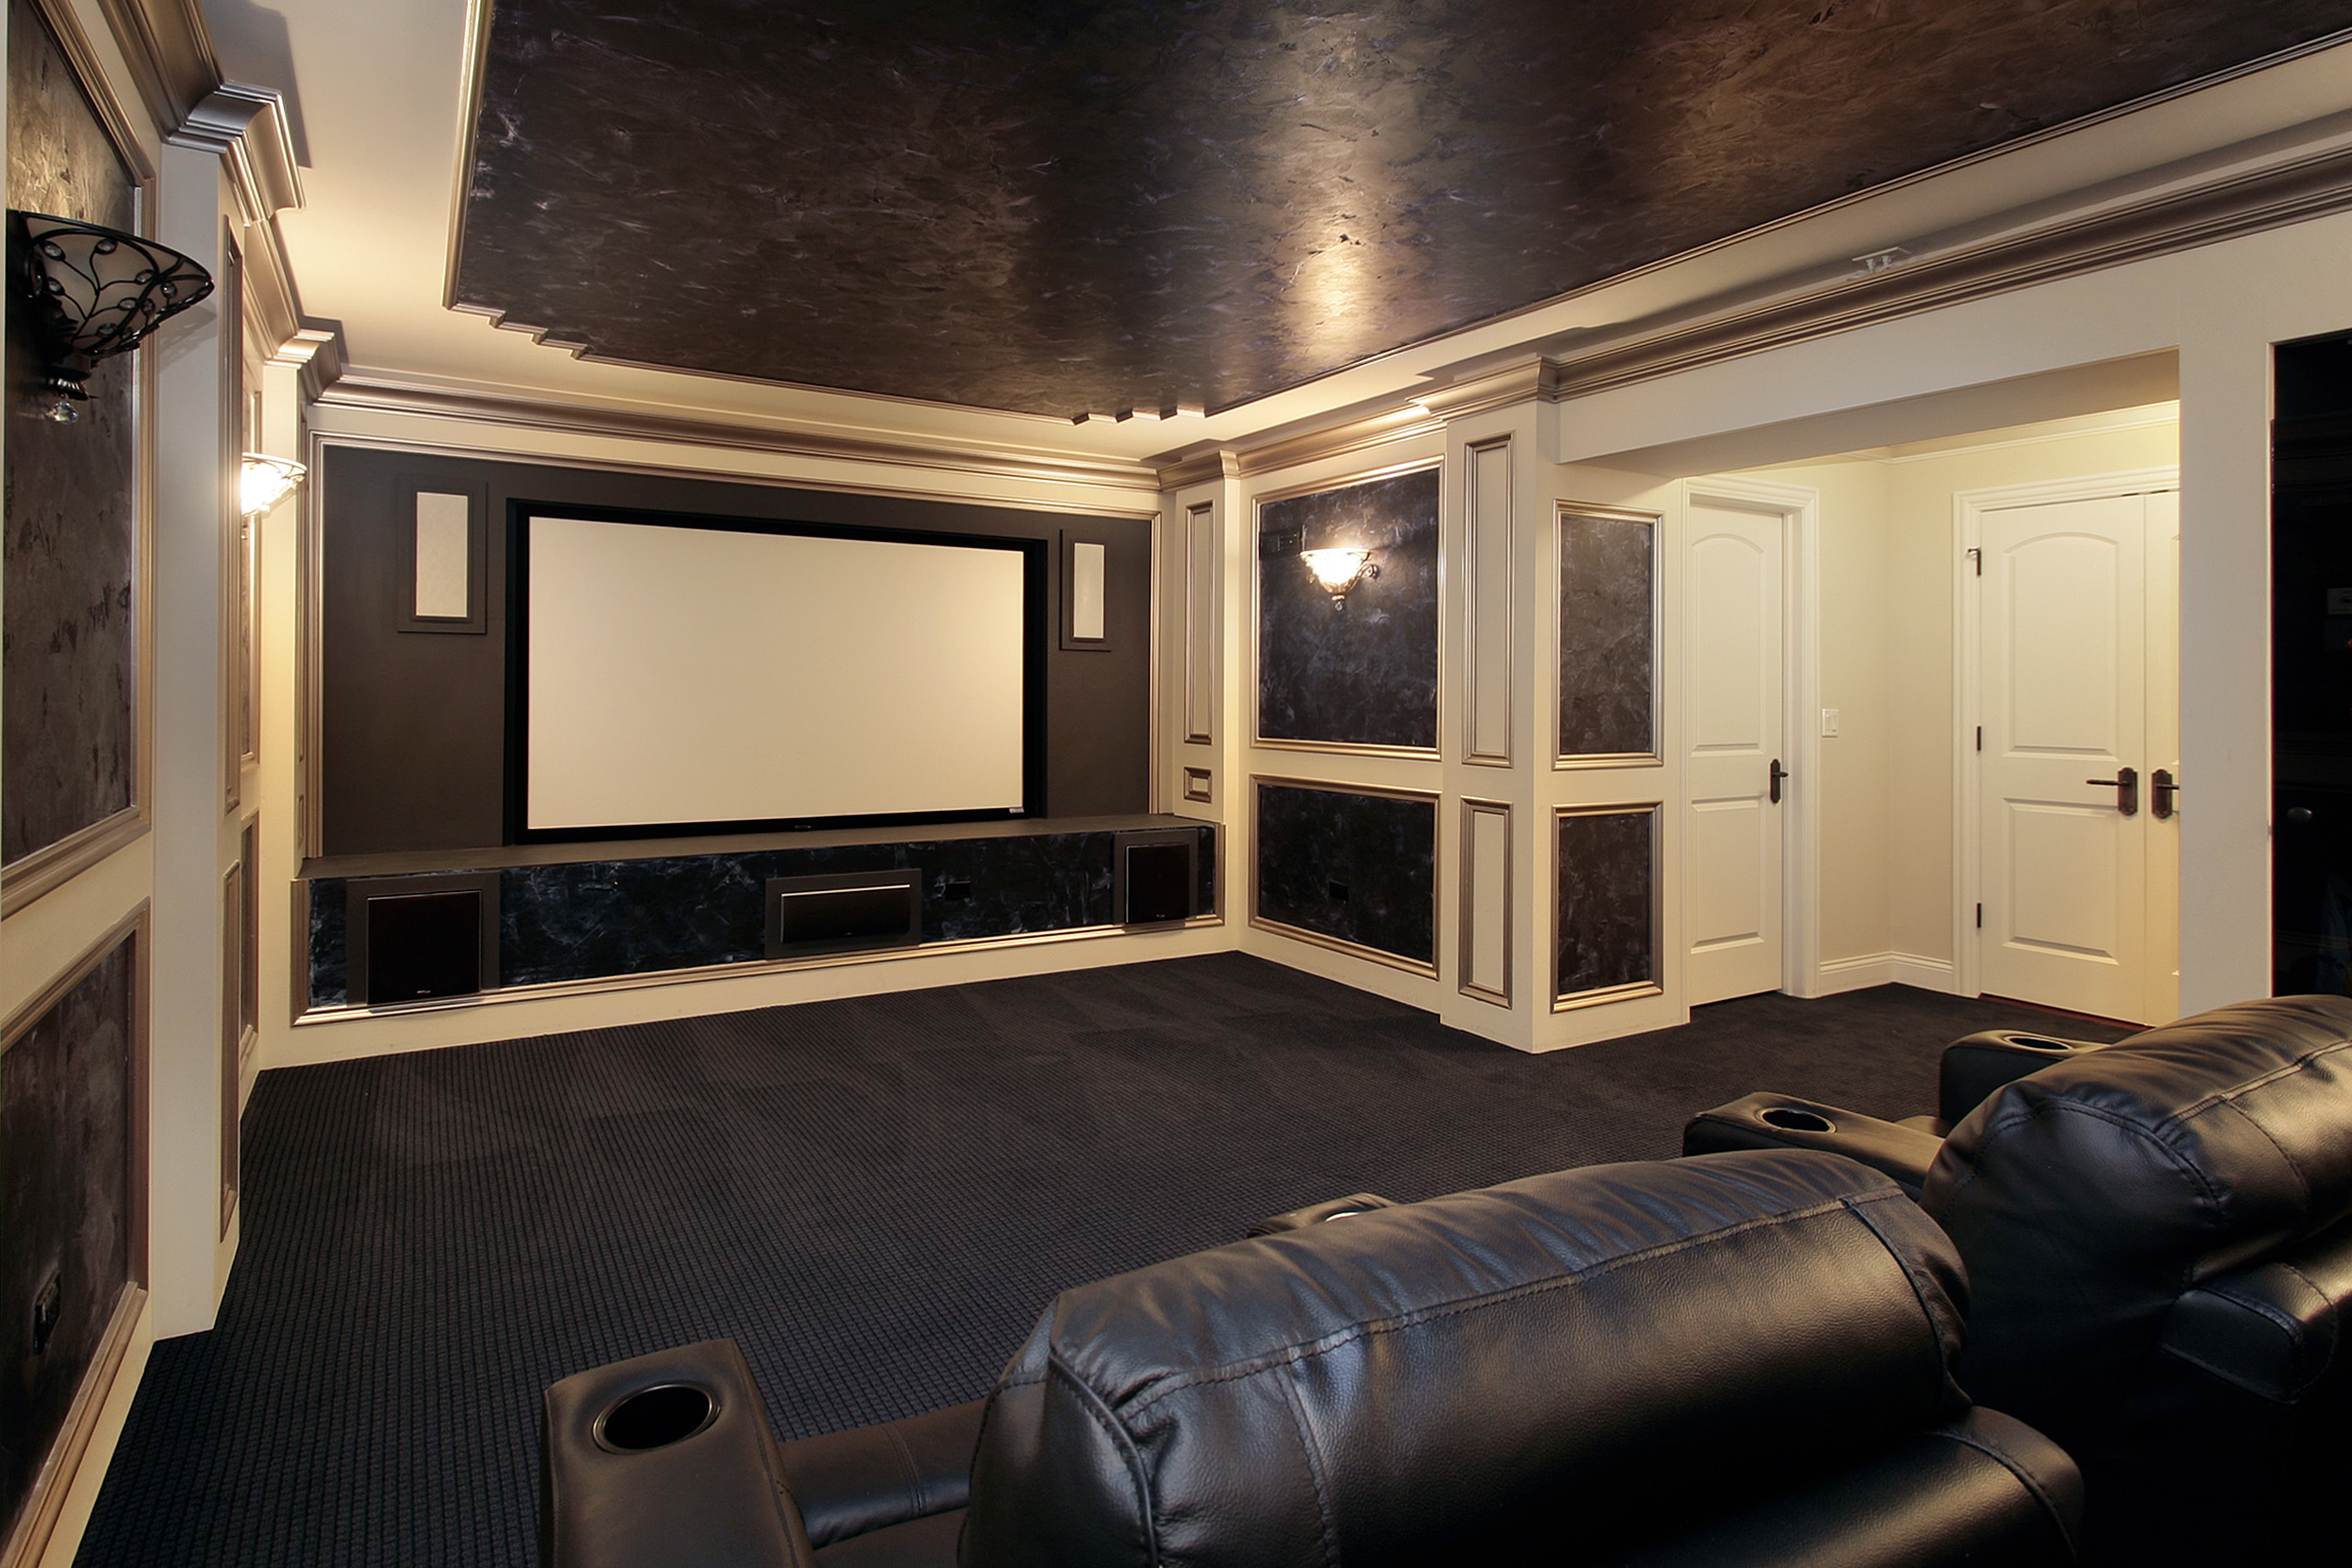 Home Theater Simply Wiring Commercial Charlotte Nc A System Luxury Room